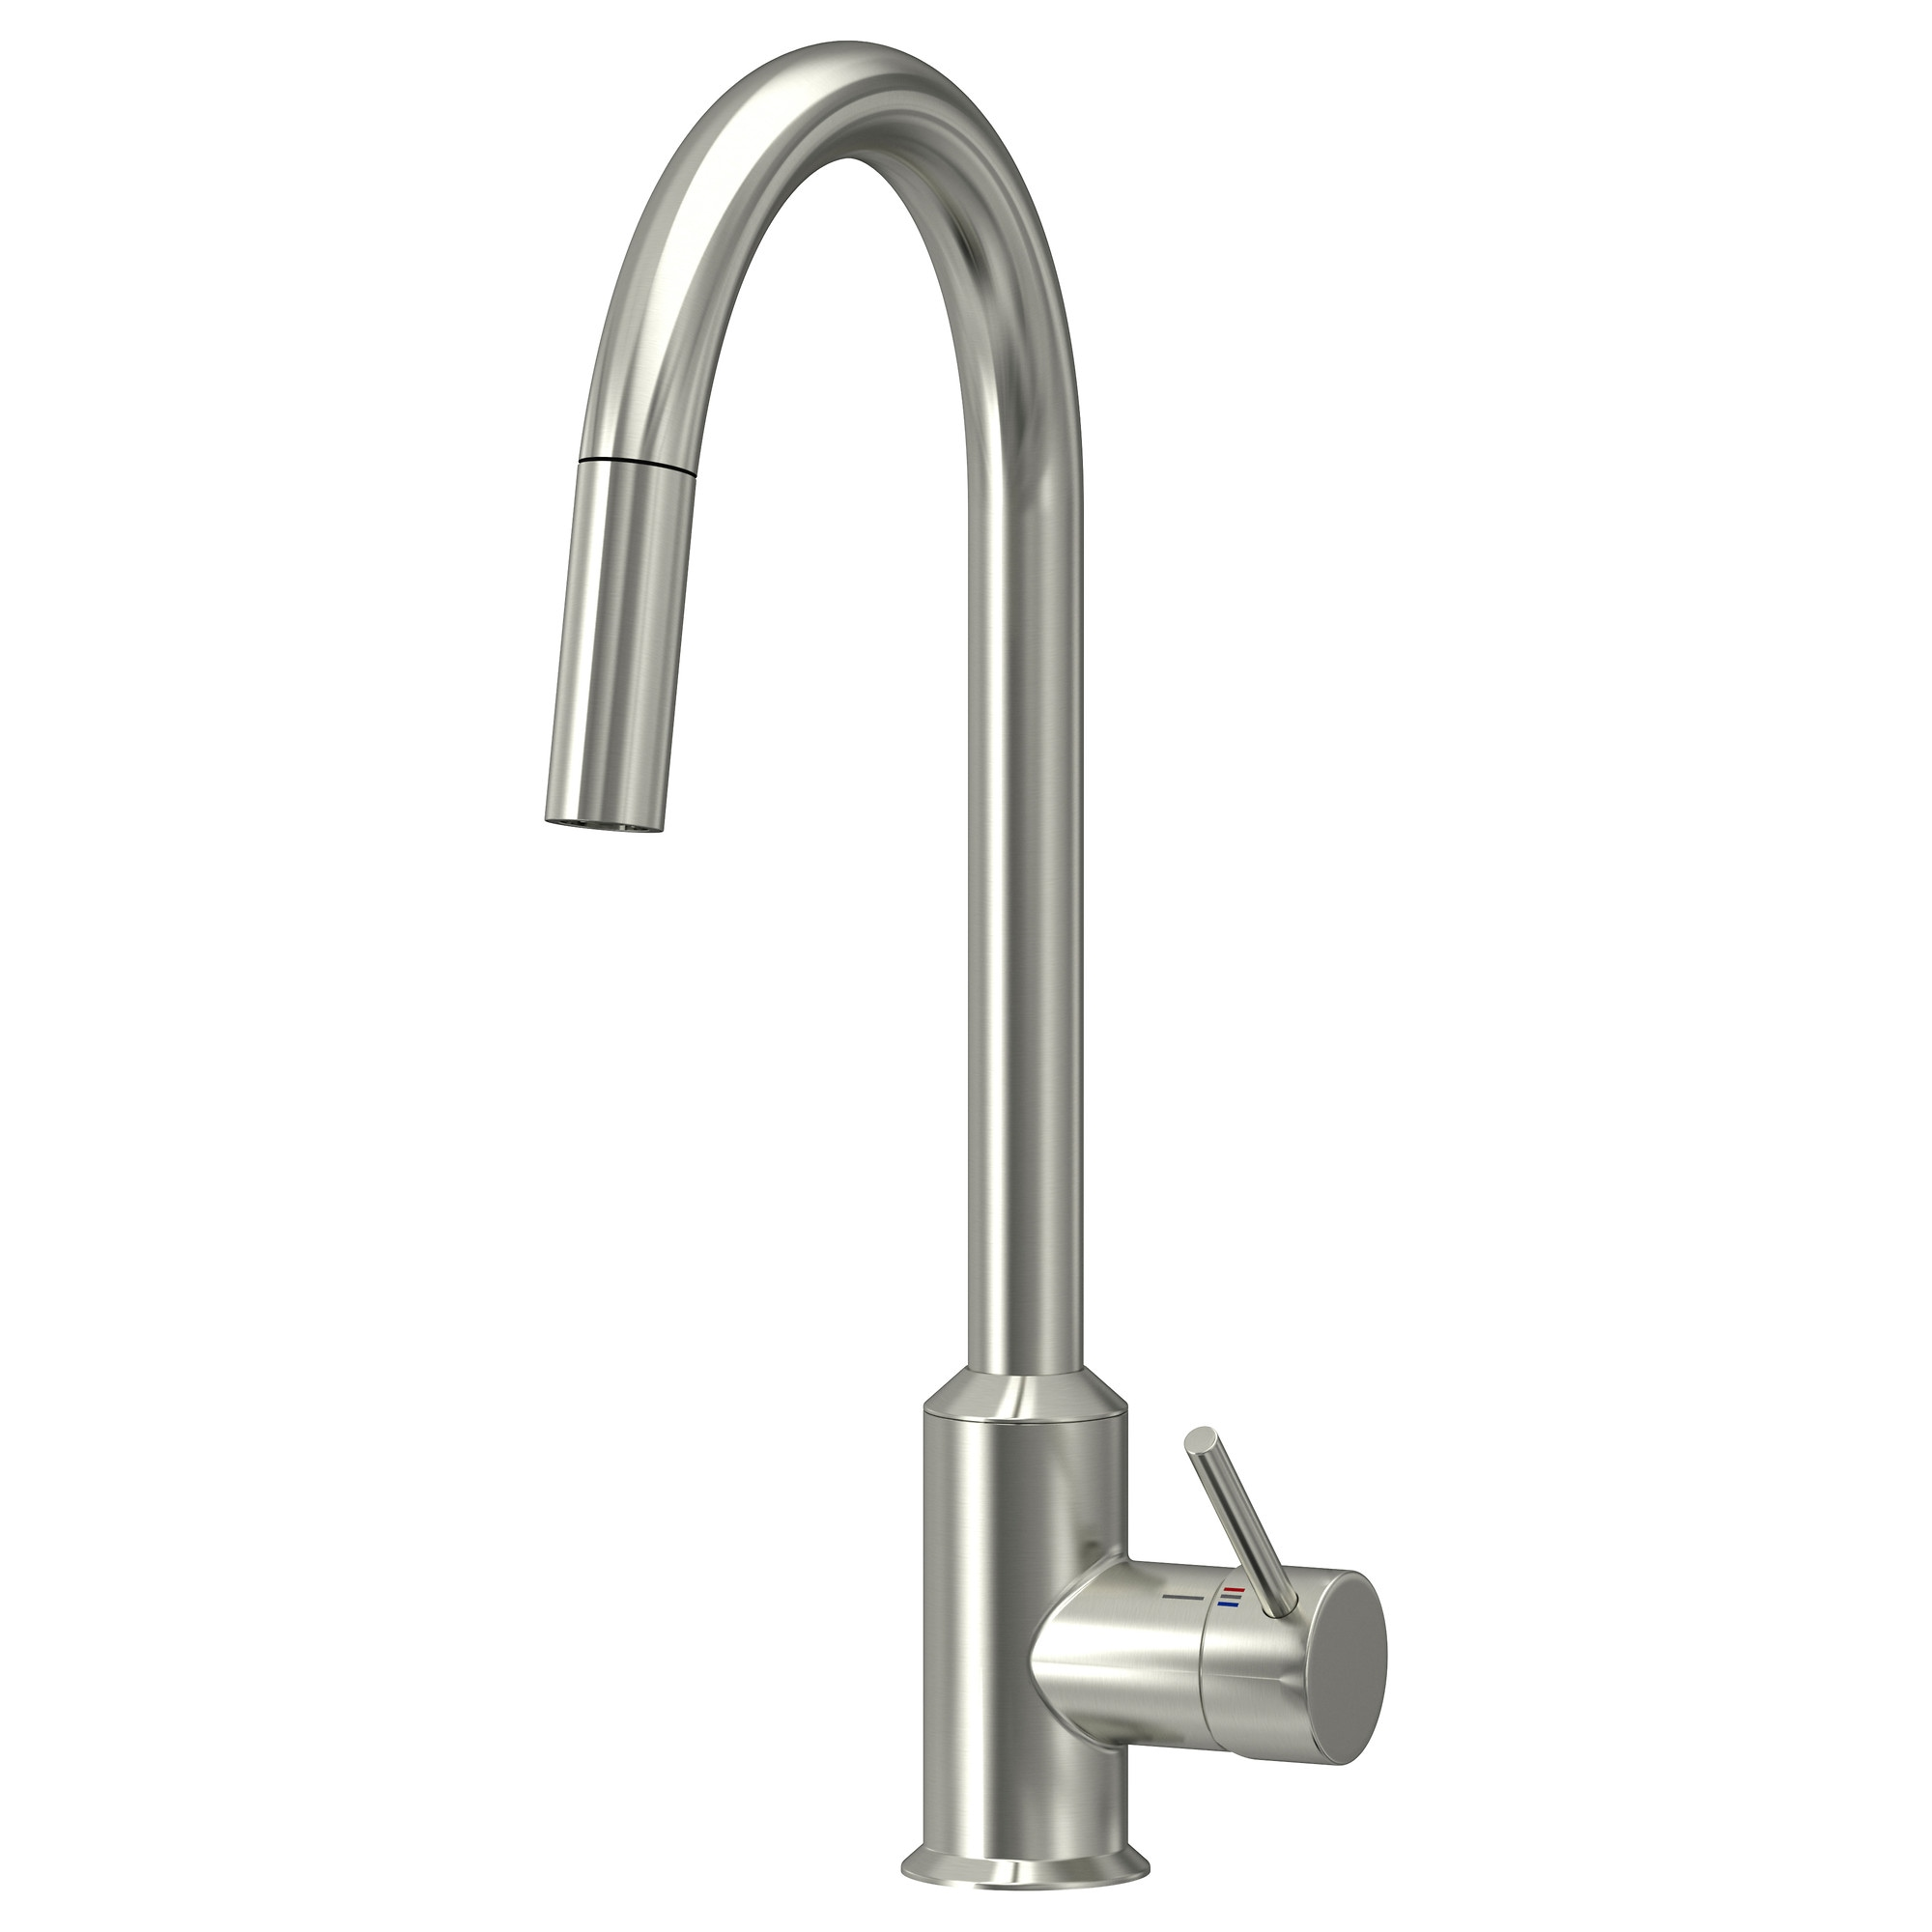 kitchen faucet RINGSK R kitchen faucet with pull out spout pull out stainless steel color Height